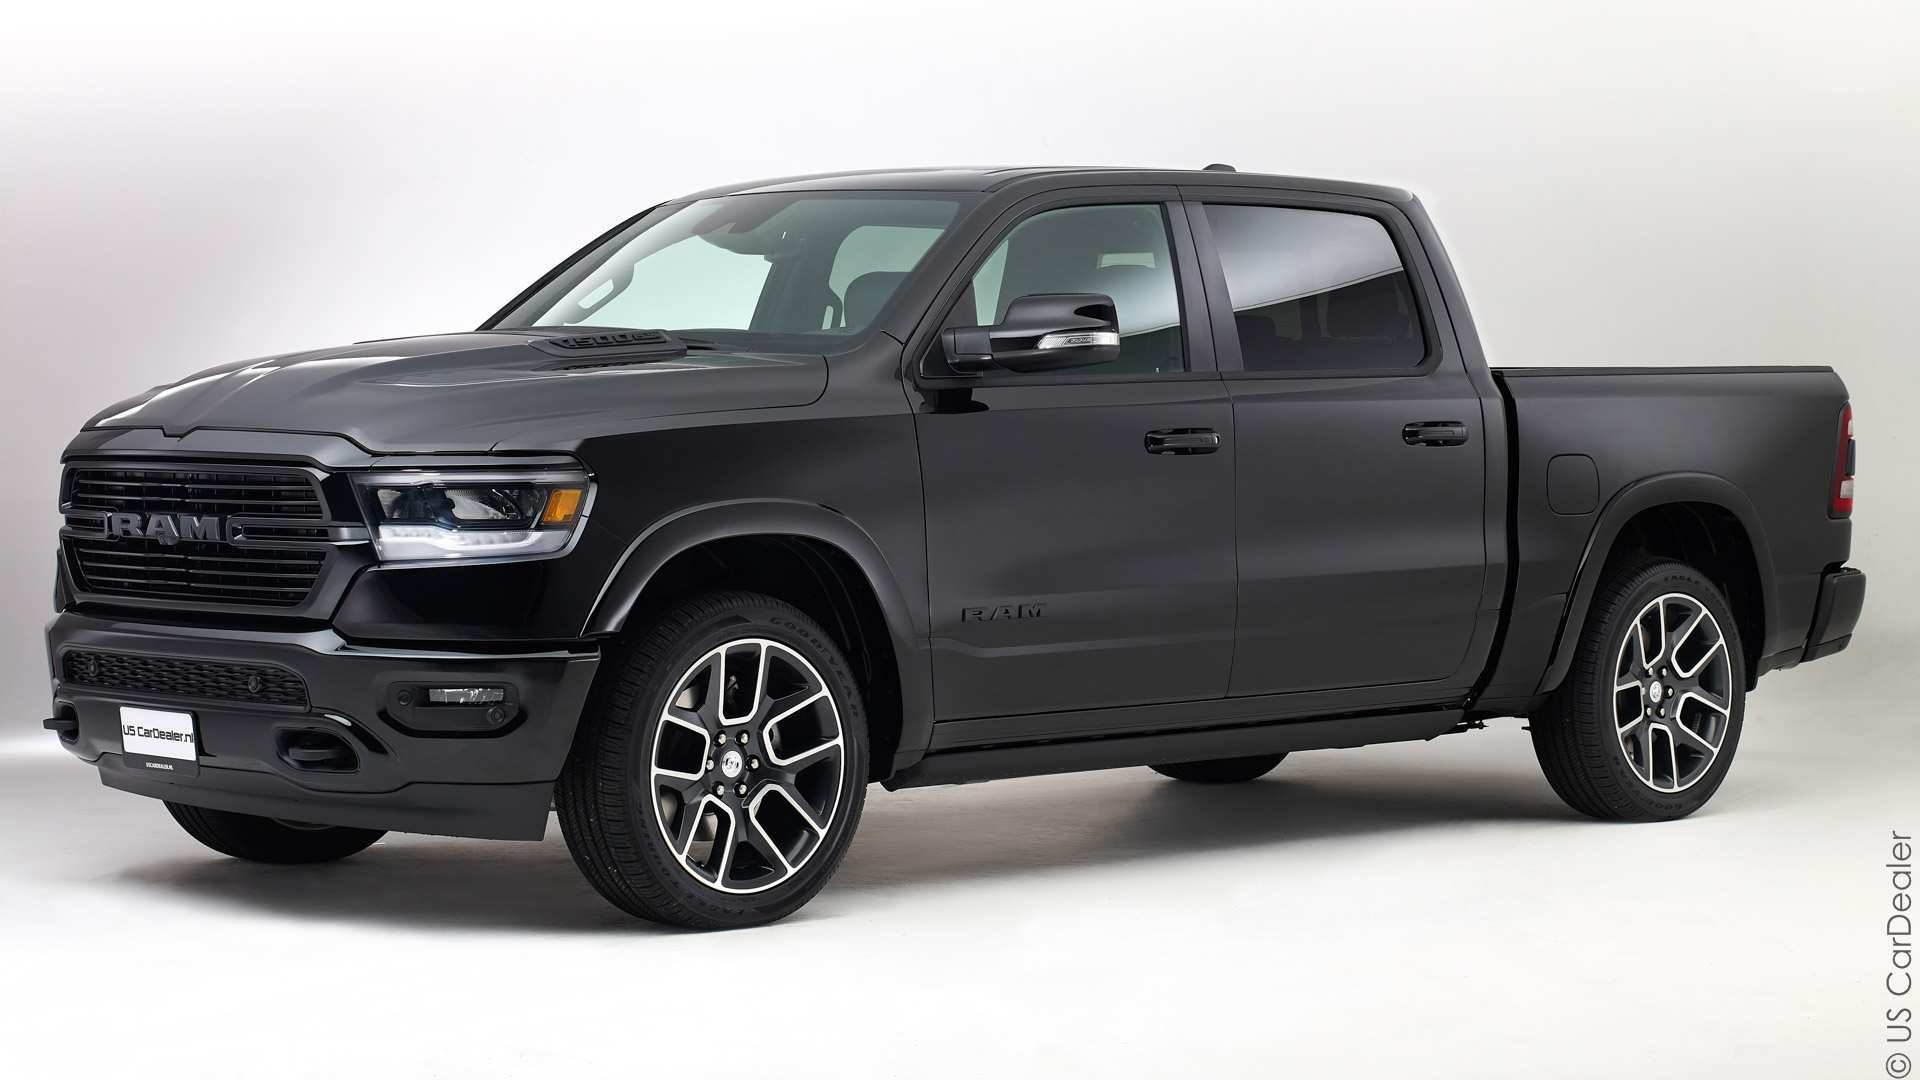 53 All New 2019 Dodge Ram 1500 Picture